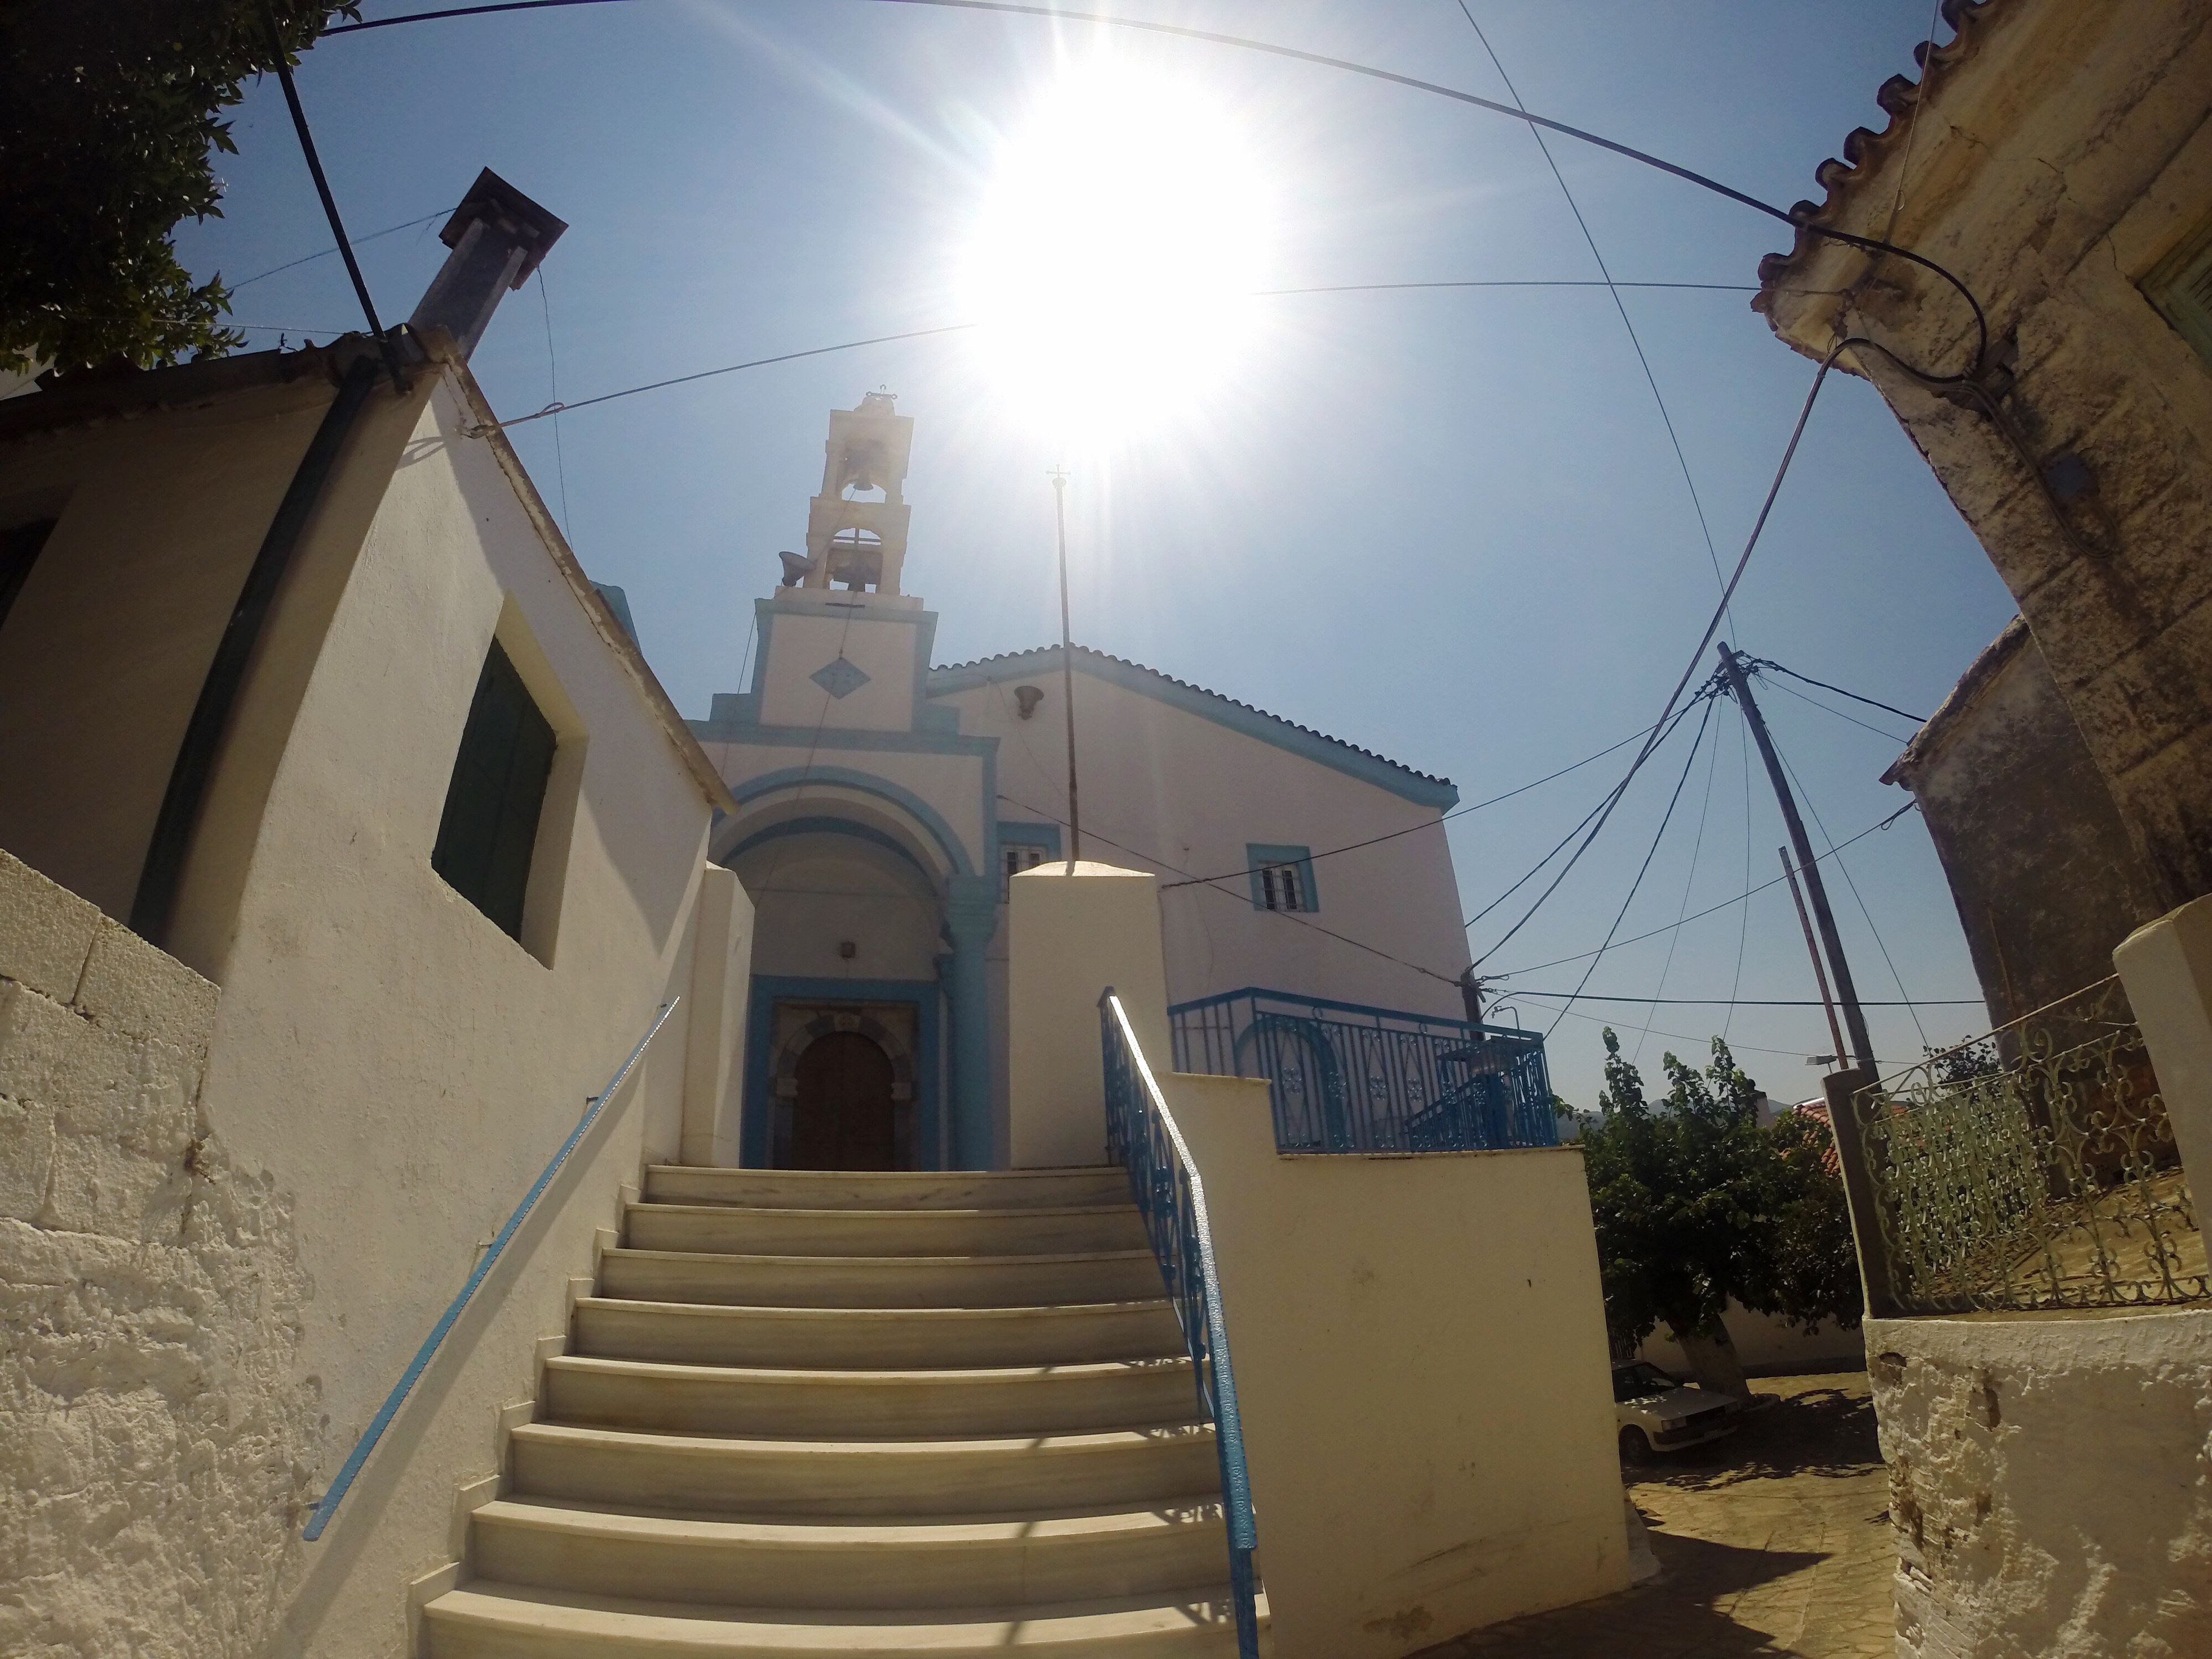 architecture, religion, church, built structure, building exterior, spirituality, place of worship, sun, low angle view, sunlight, steps, sunny, sunbeam, sky, clear sky, blue, outdoors, day, lens flare, facade, chapel, footpath, no people